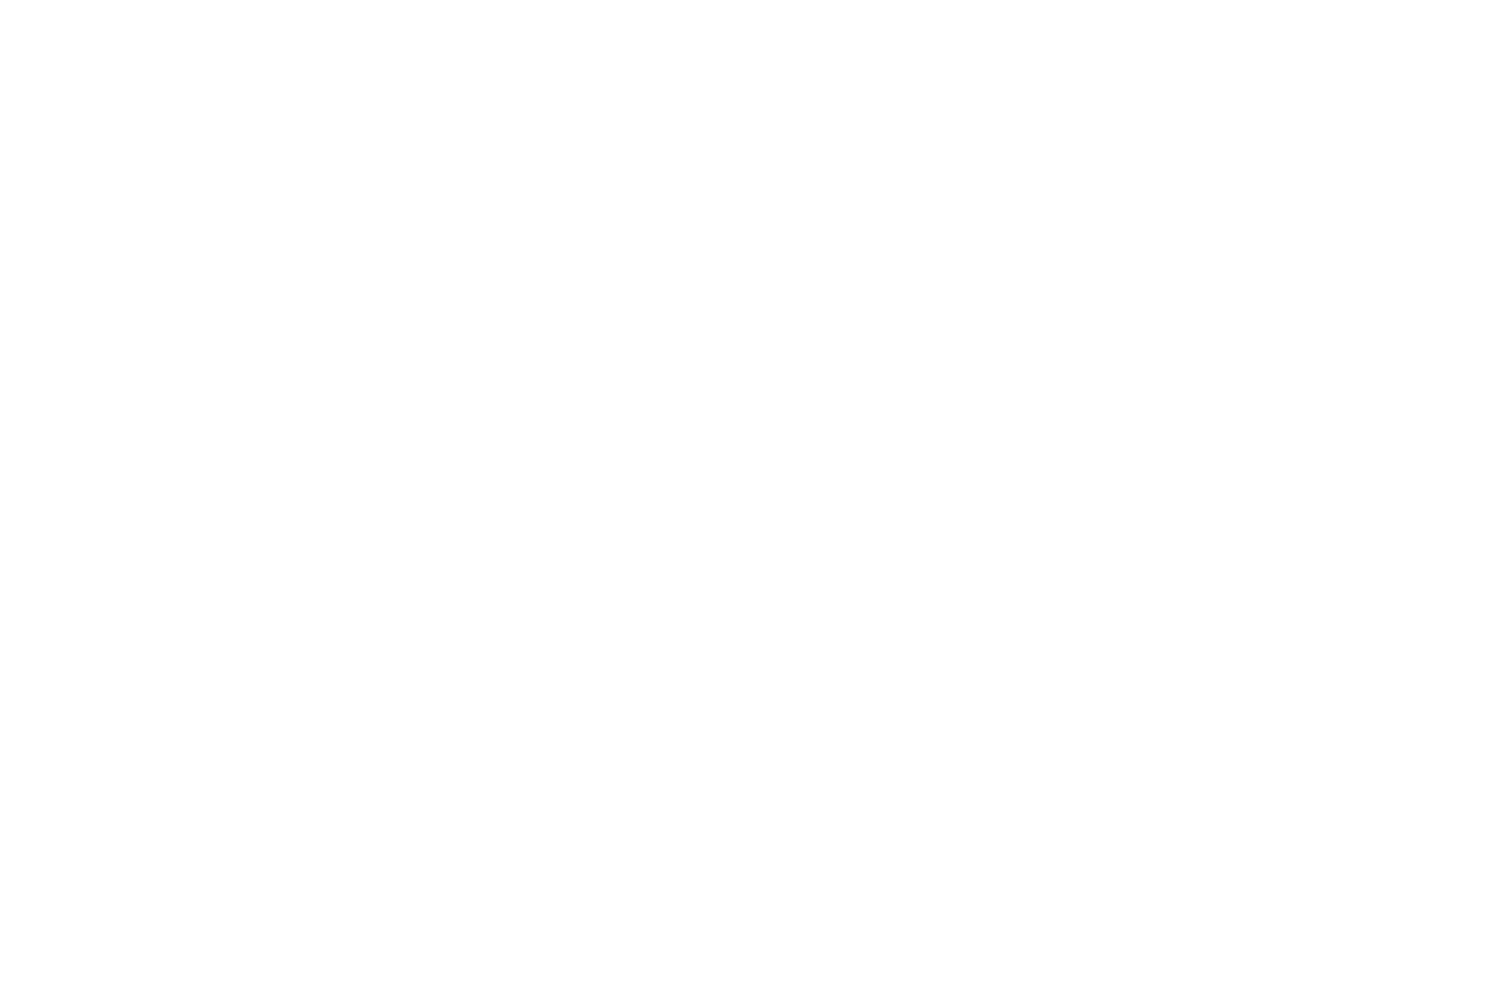 Deedré Cousins | Multimedia Preditor & Consultant